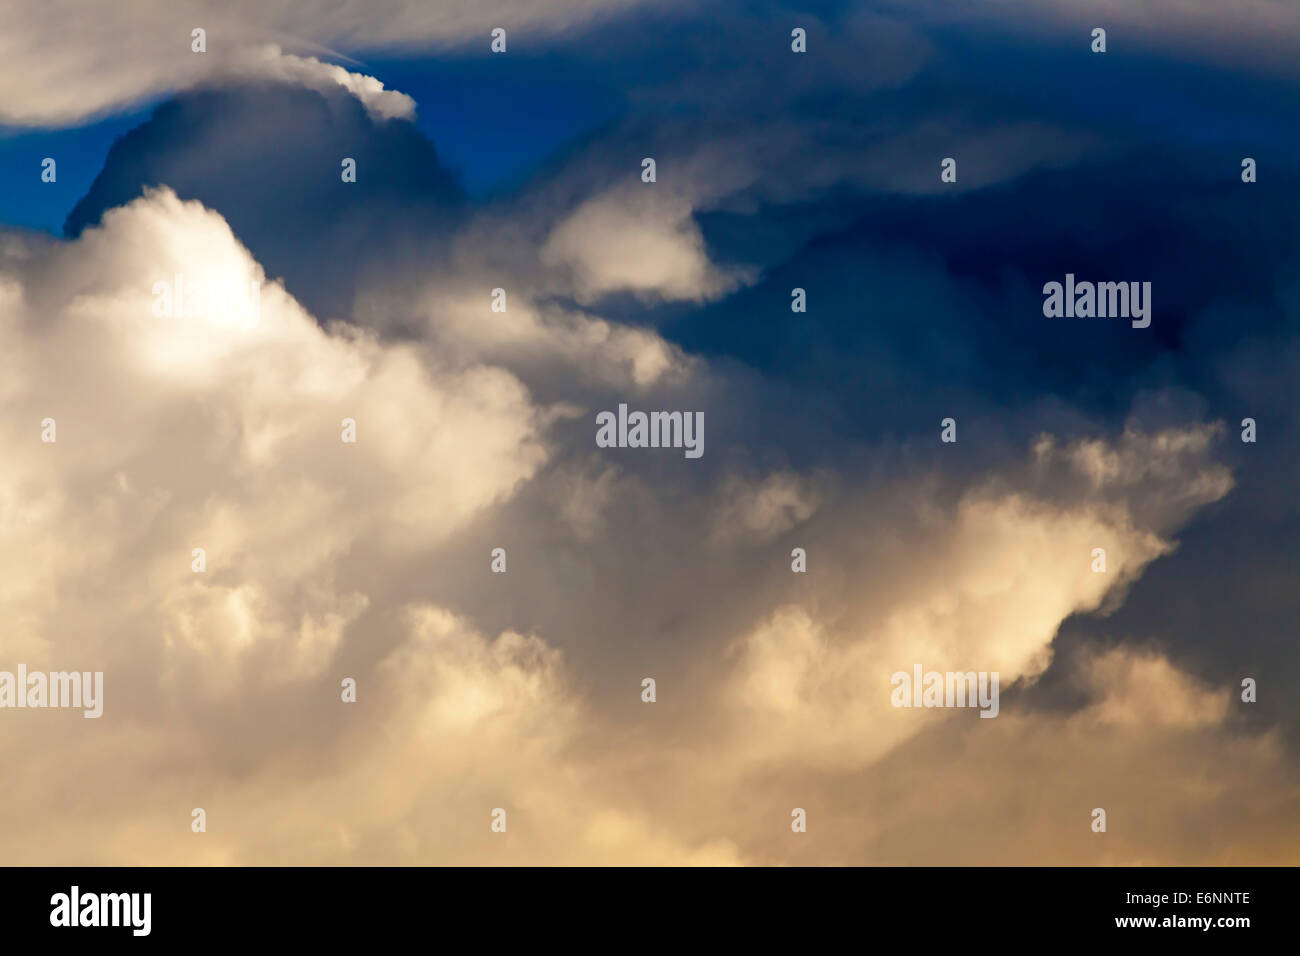 View of cloud formations from aircraft window over Indian Ocean Stock Photo